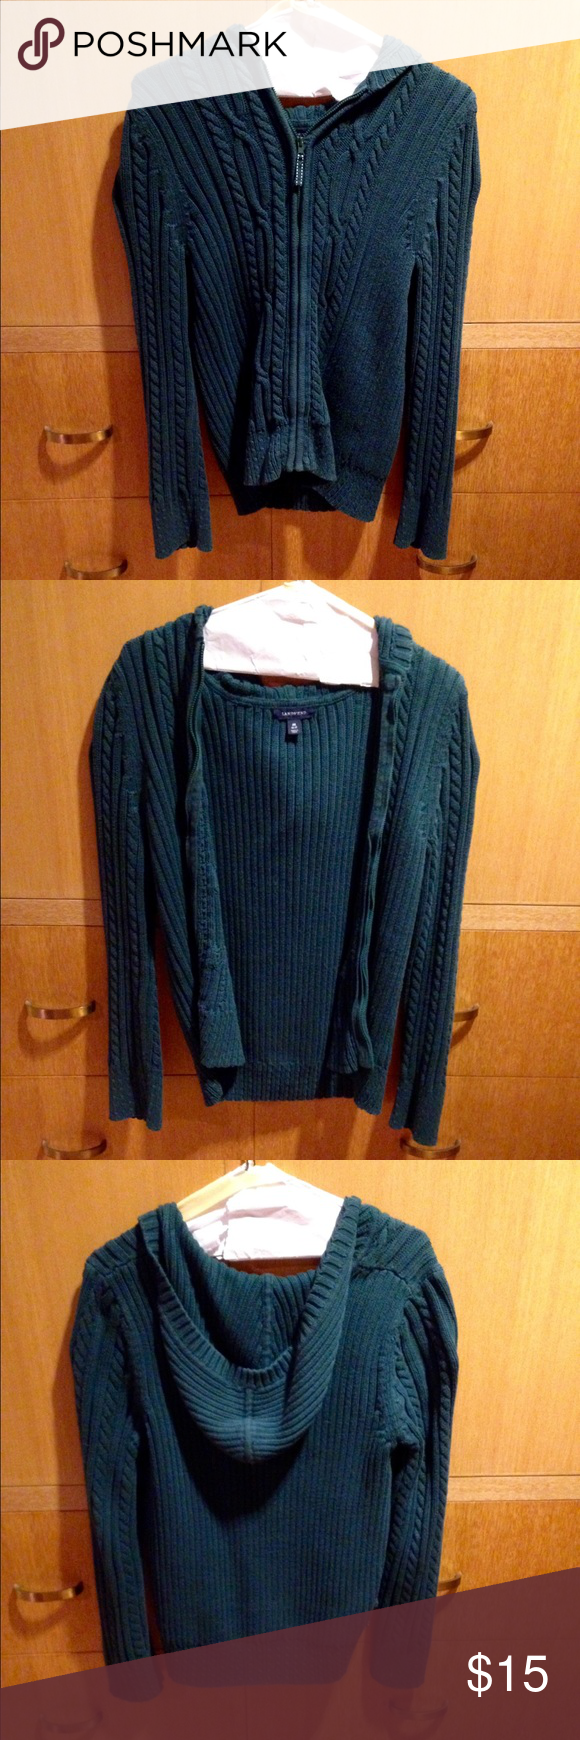 💥LAST CHANCE💥 Warm Cotton Sweater ‼️️TAKING LISTING OFF AUG ...